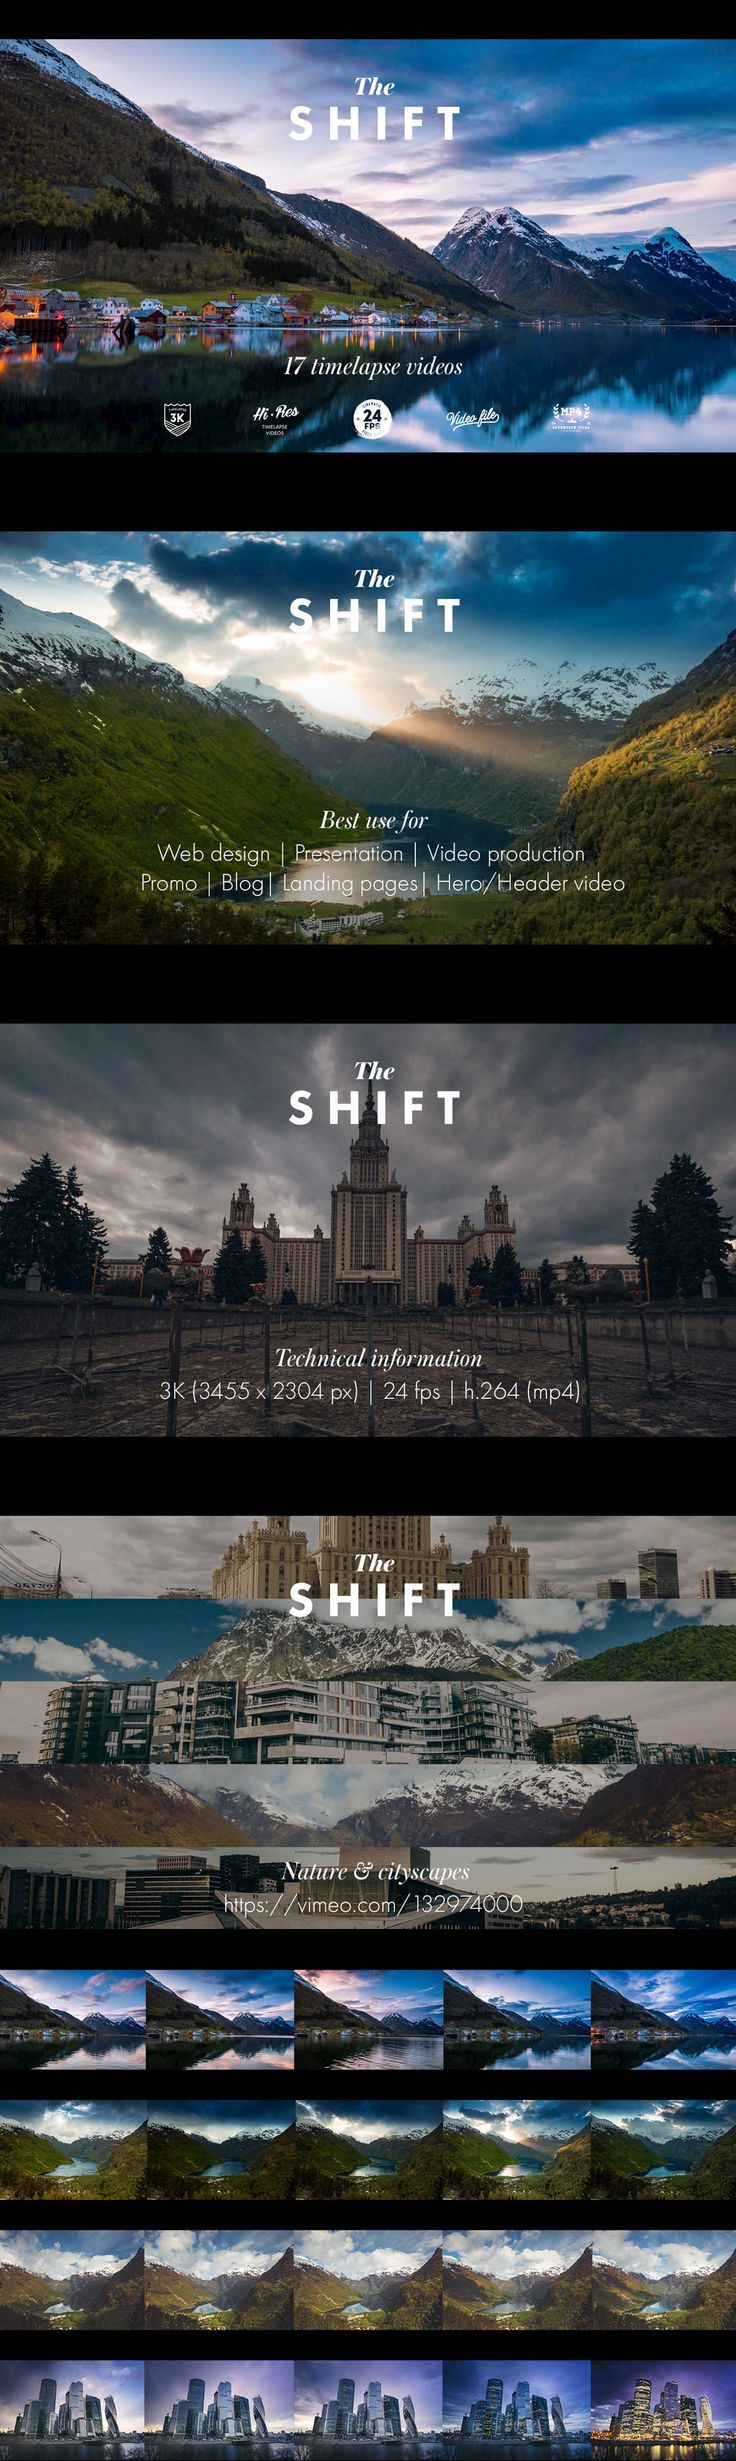 The Shift Timelapse Video Collection - This amazing video collection contains 17, 3K high resolution time lapse videos. Timelapse videos landscapes and cityscapes for your next awesome project from video production to web design and presentations.